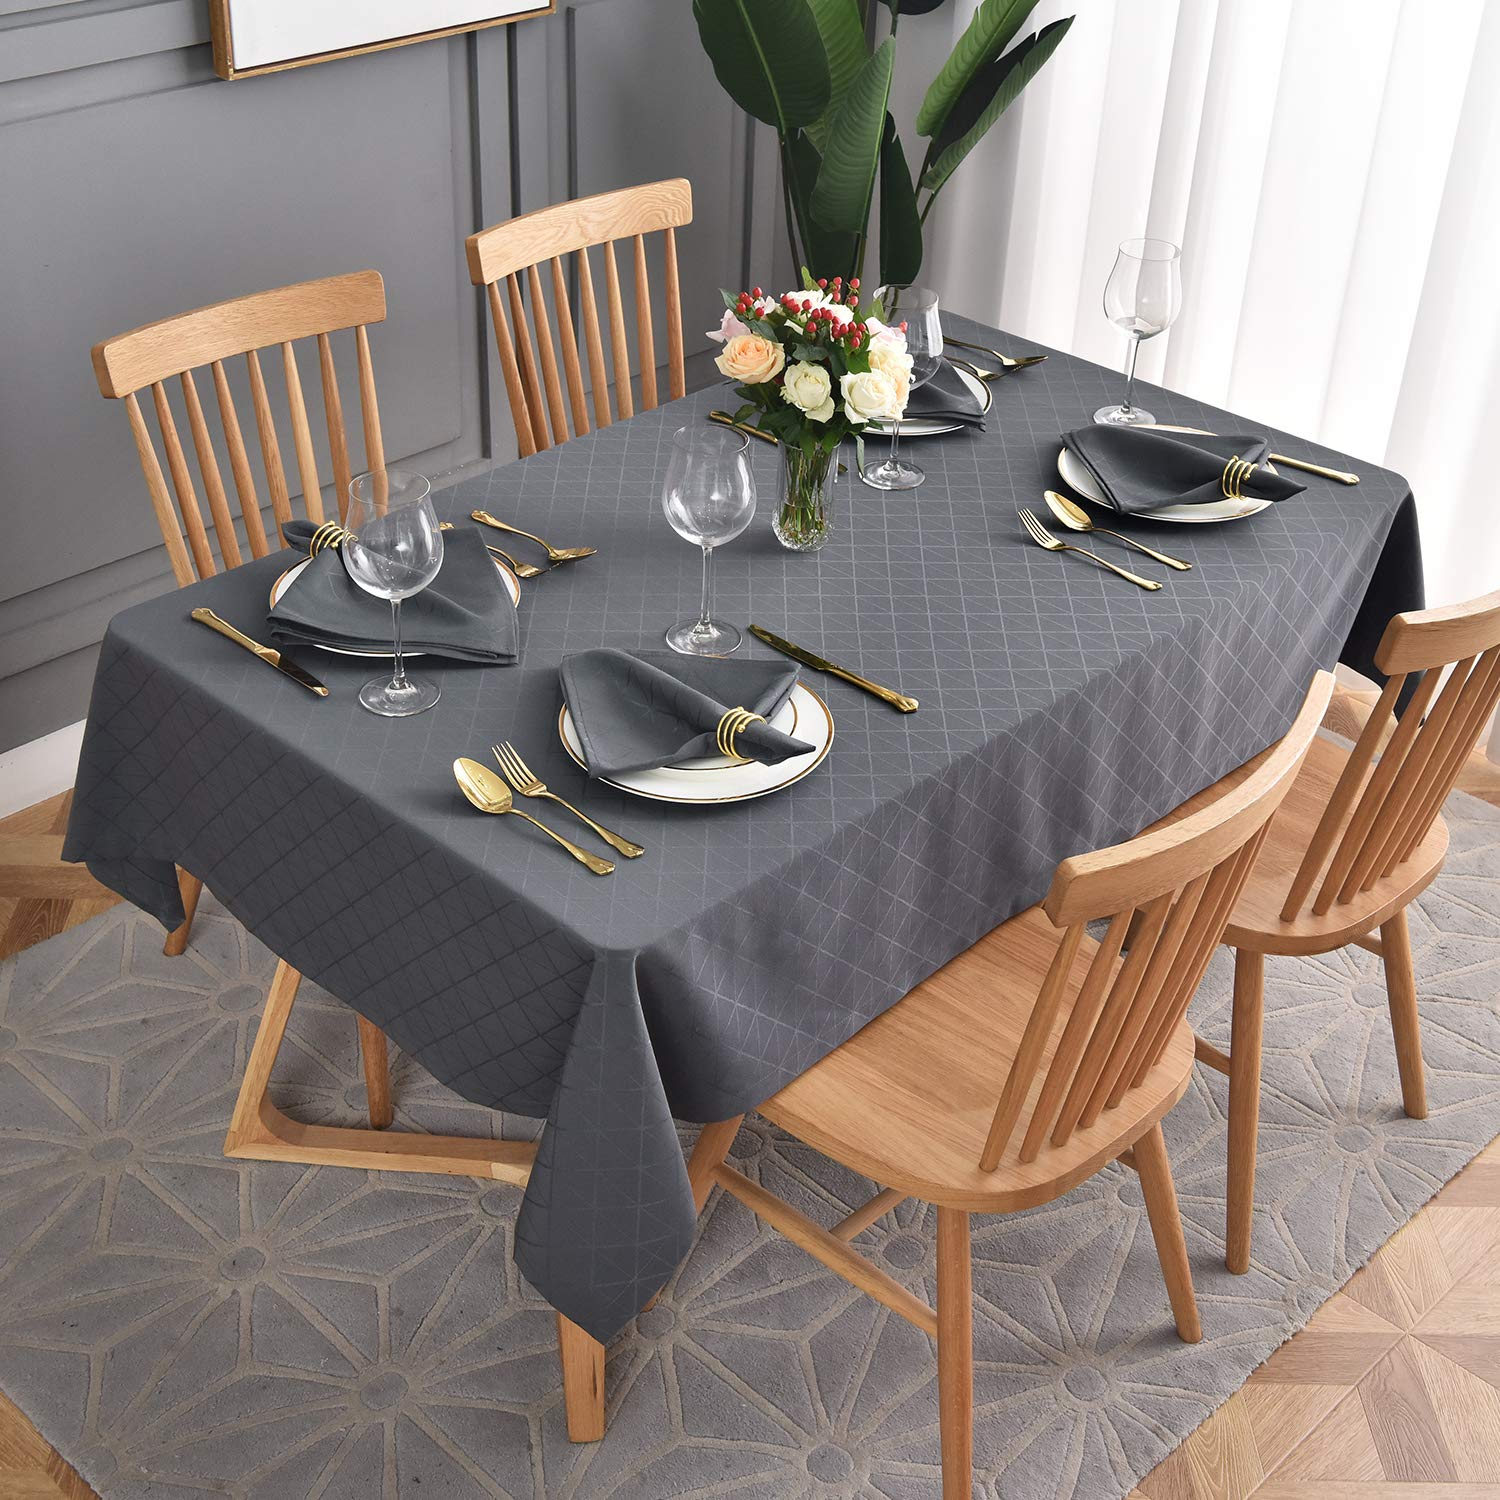 maxmill Jacquard Poly-Cotton Tablecloth Geometric Pattern SpillProof, Water Resistant Wide Hem Heavy Weight Soft Table Cloth for Kitchen Dining Tabletop Decoration Rectangle, Charcoal, 58x84 Inch